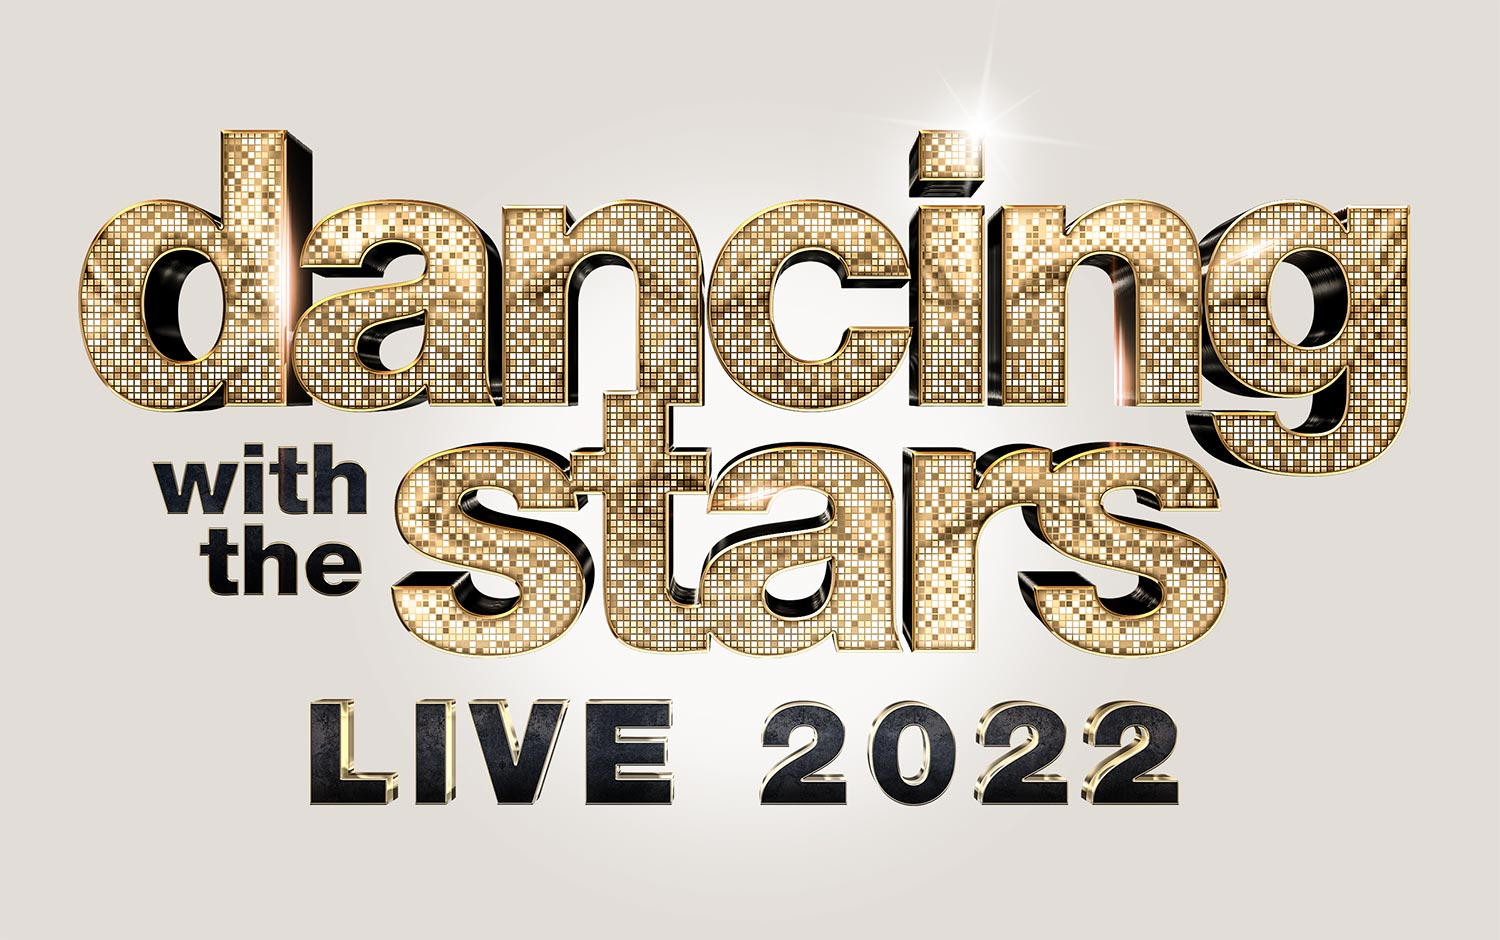 Dancing With The Stars - Live 2022